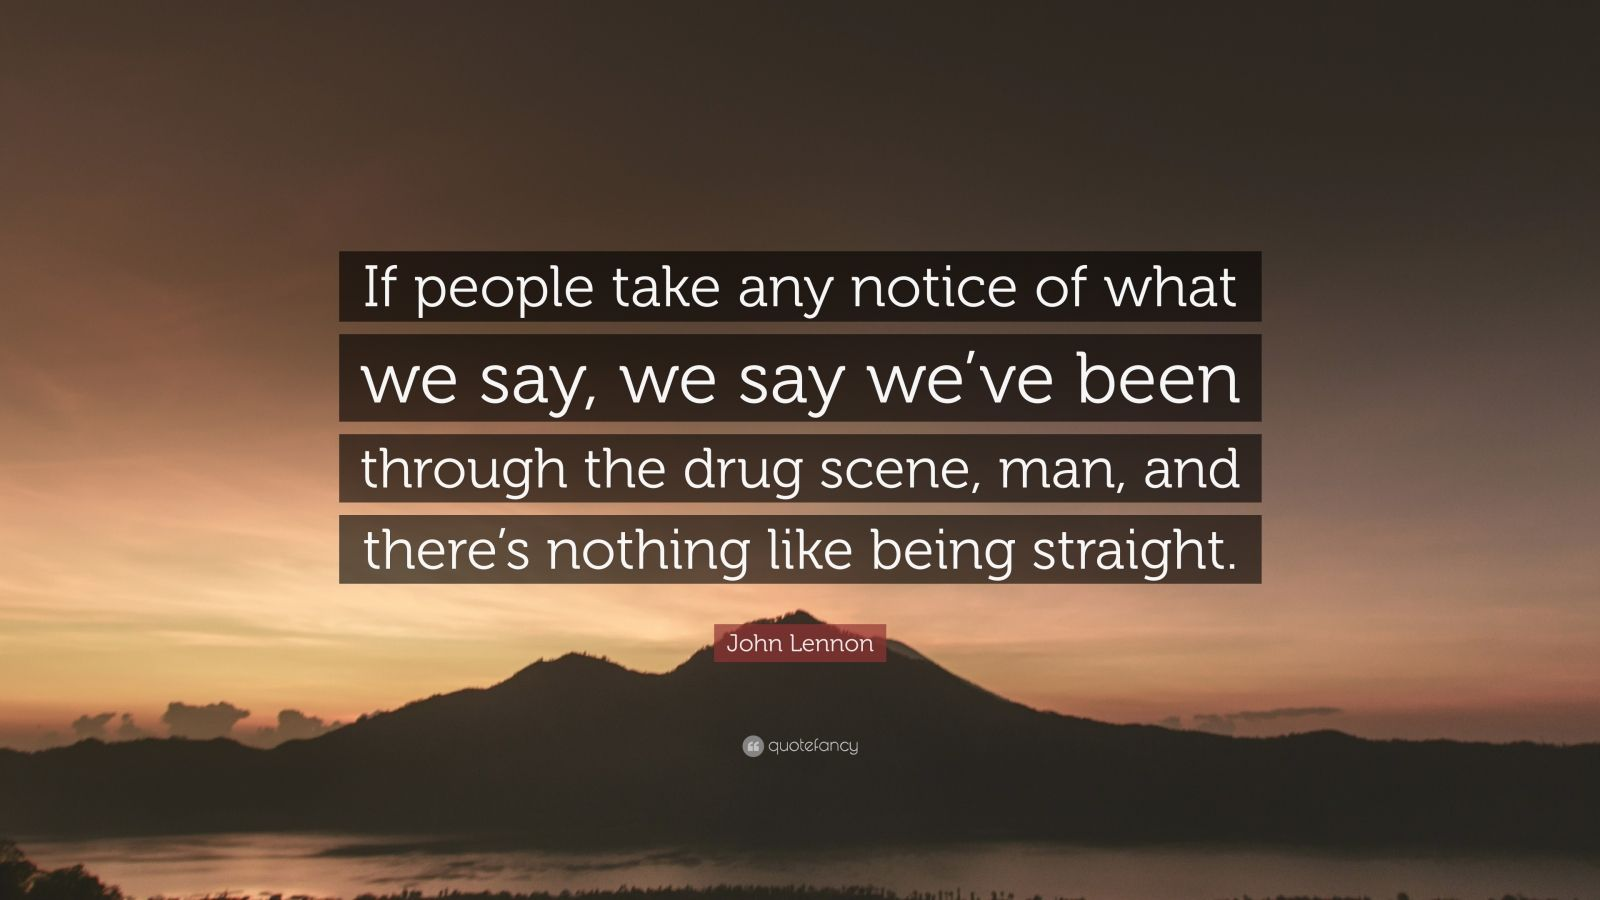 """John Lennon Quote: """"If people take any notice of what we say, we say we've been through the drug scene, man, and there's nothing like being straight."""""""